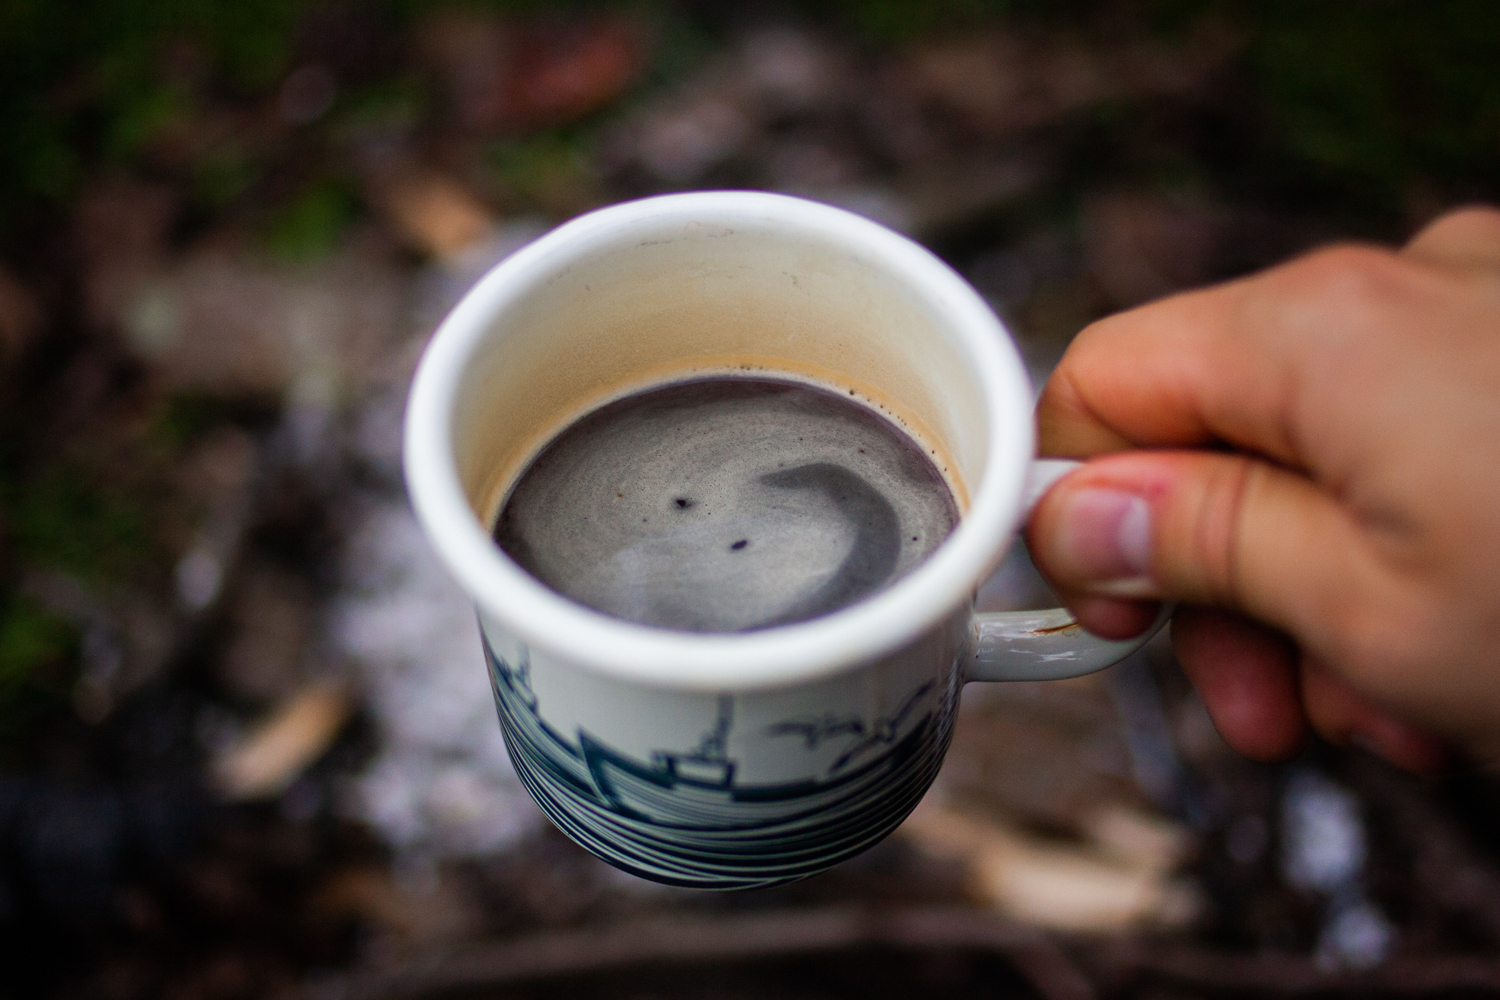 camping coffee maker - not too bad